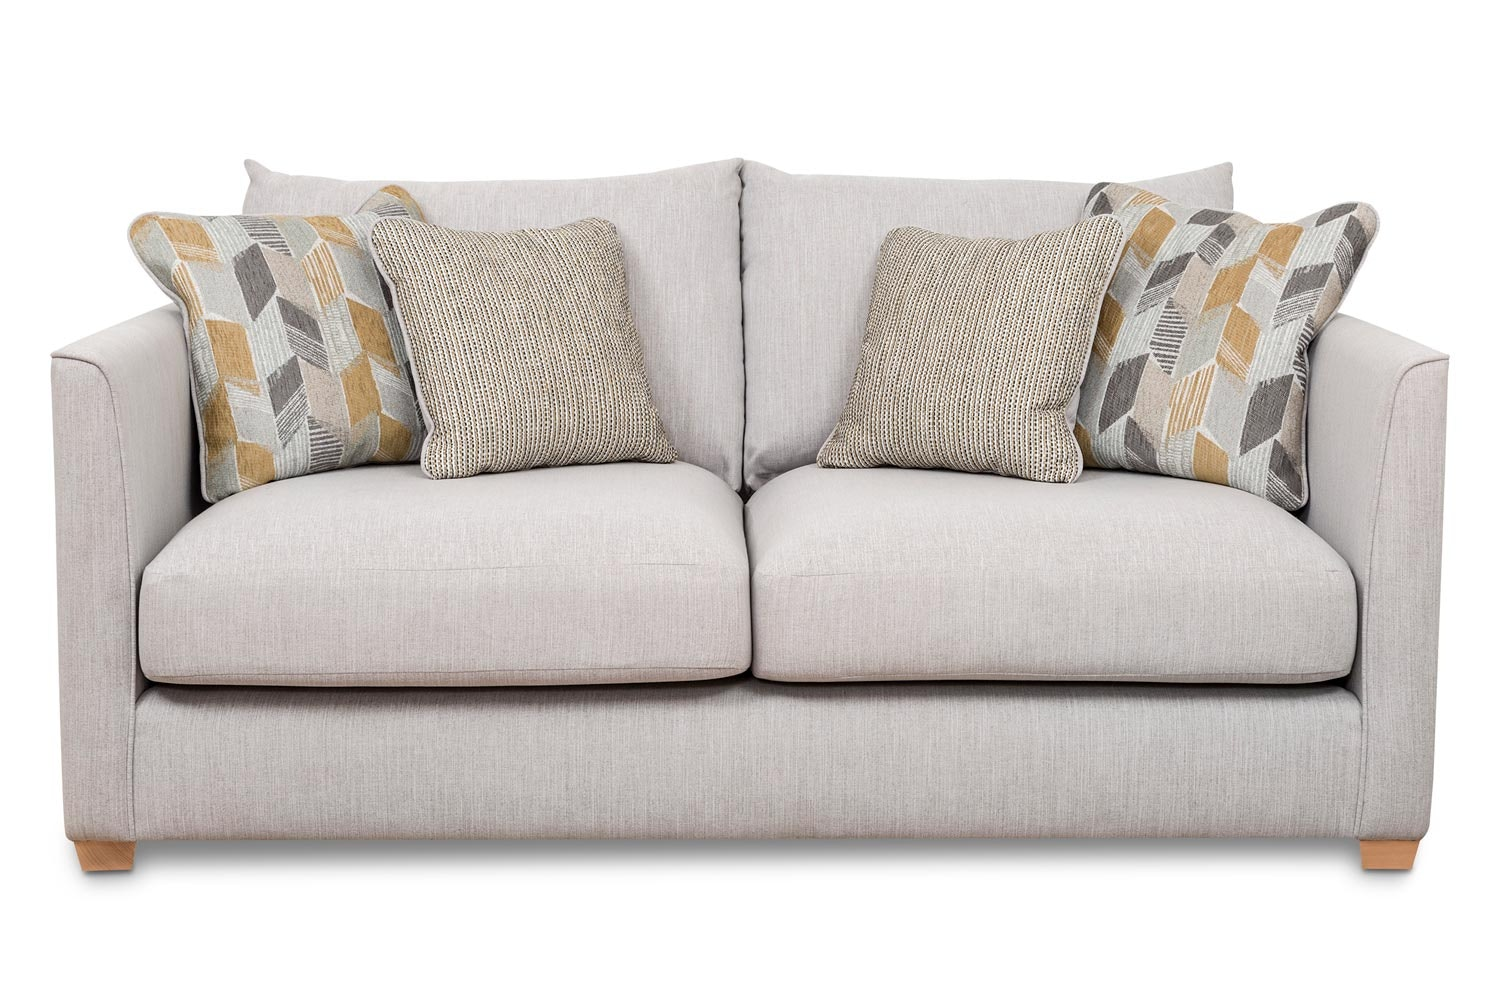 Faye 3 Seater Sofa | Category B